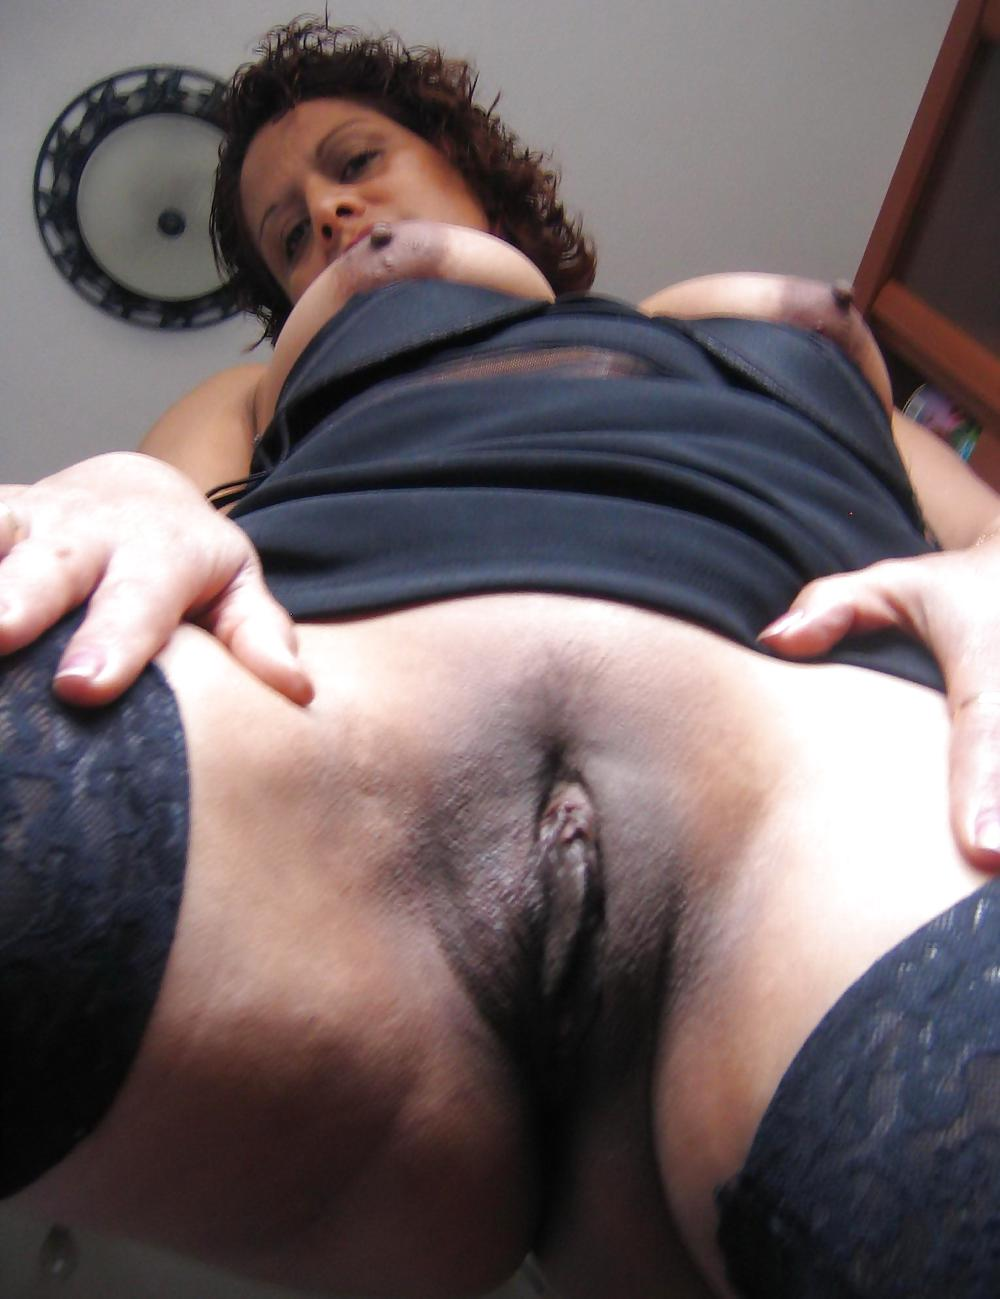 BBW, Matures and big pussy lips collection Porn Pics #8287976